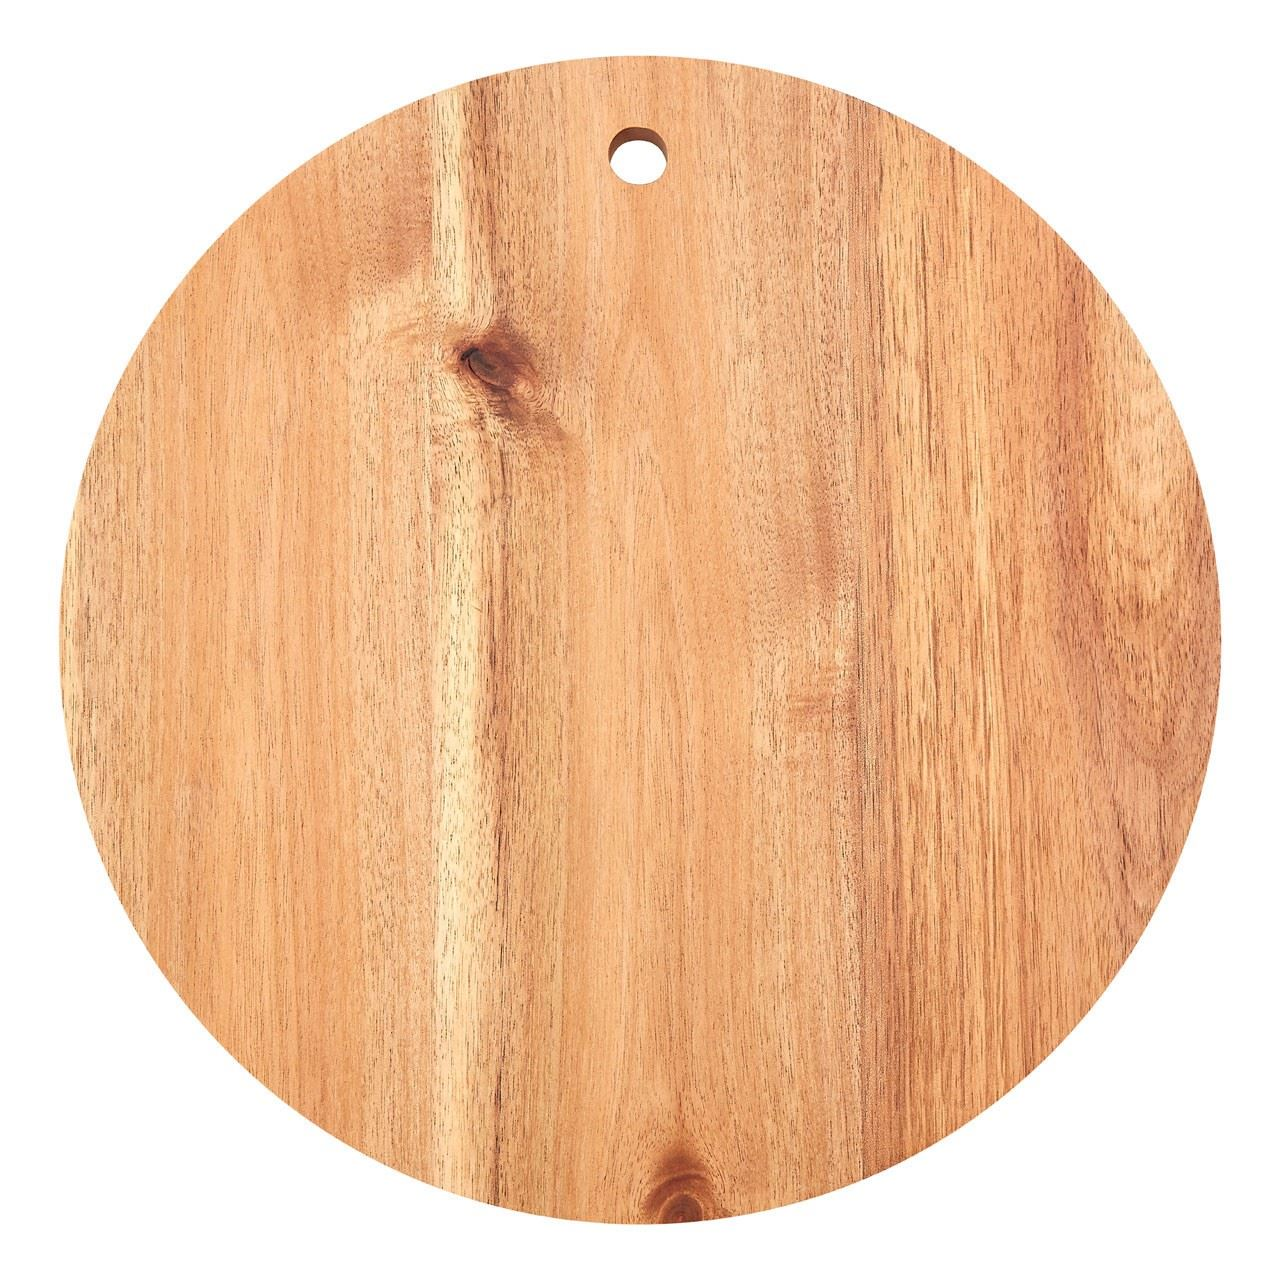 Chopping-Boards-Wooden-Cutting-Serving-Naturally-Antibacterial thumbnail 6